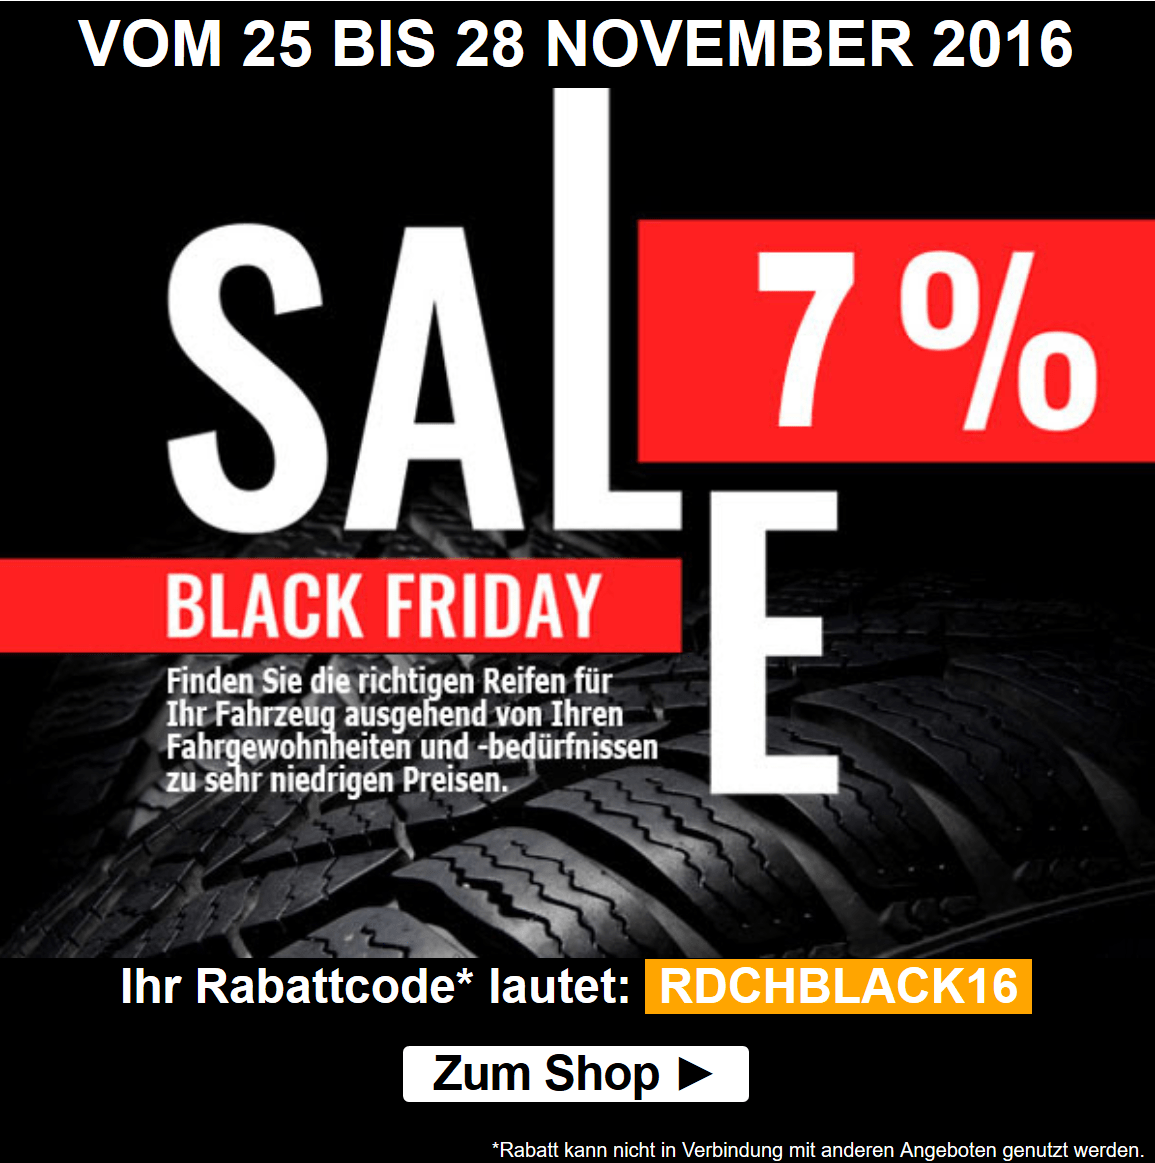 Black Friday Rabatt Reifendirekt Dealübersicht Zum Black Friday 2019 Cyber Monday